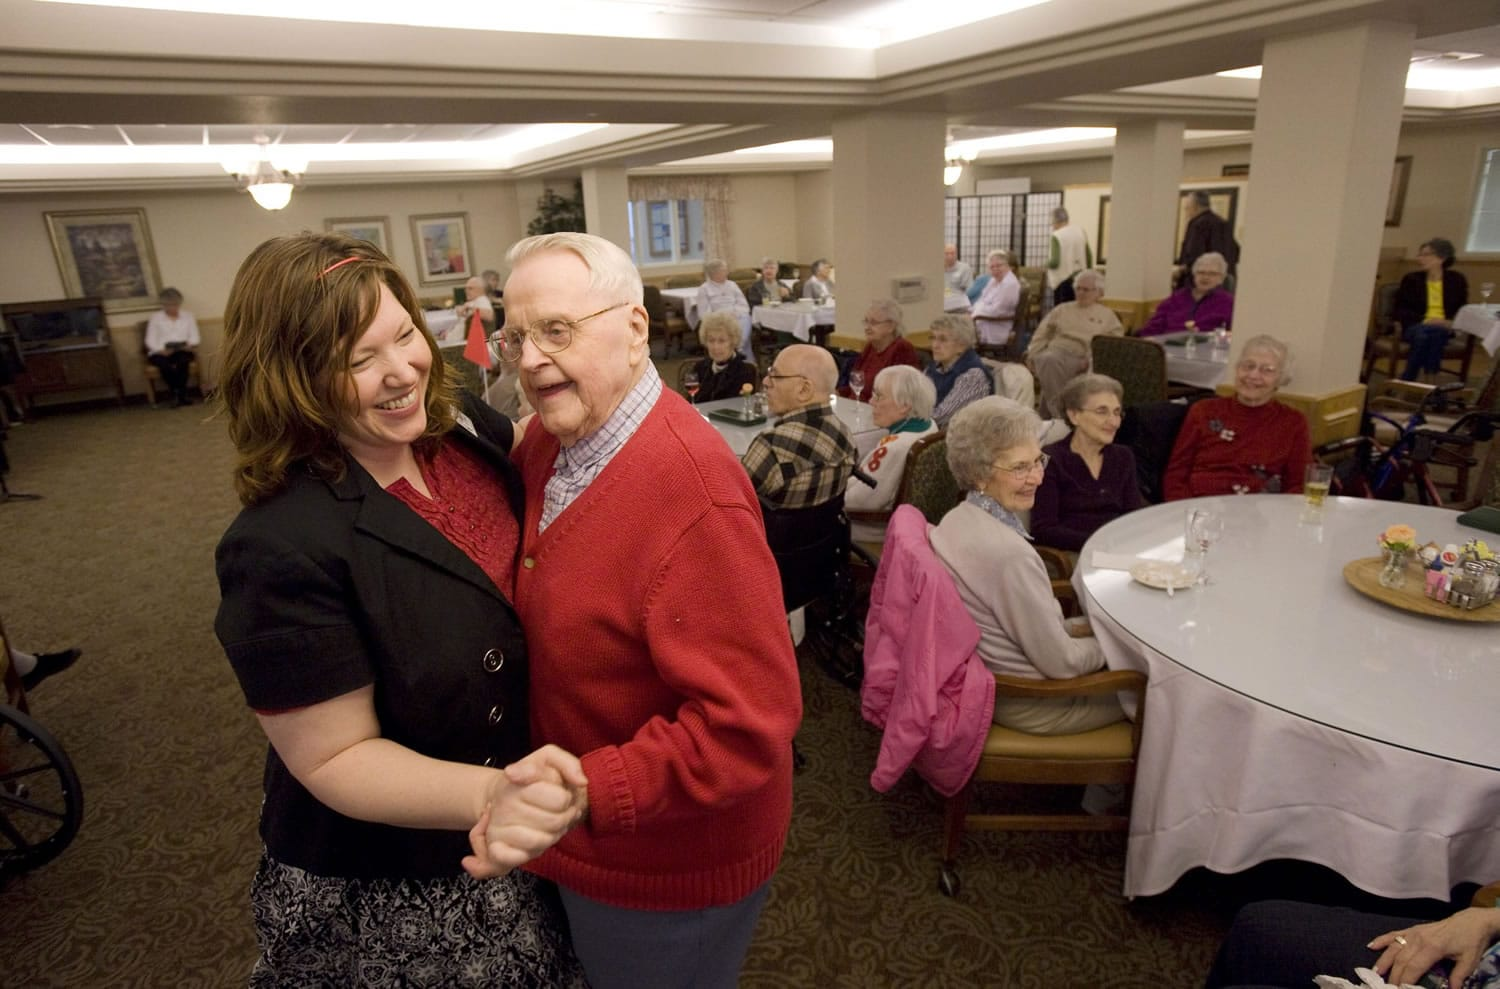 Resident Larry Hayden, 89, dances with activities director Michelle Avdienko during a wine and cheese social hour at Glenwood Place Senior Living on Friday.